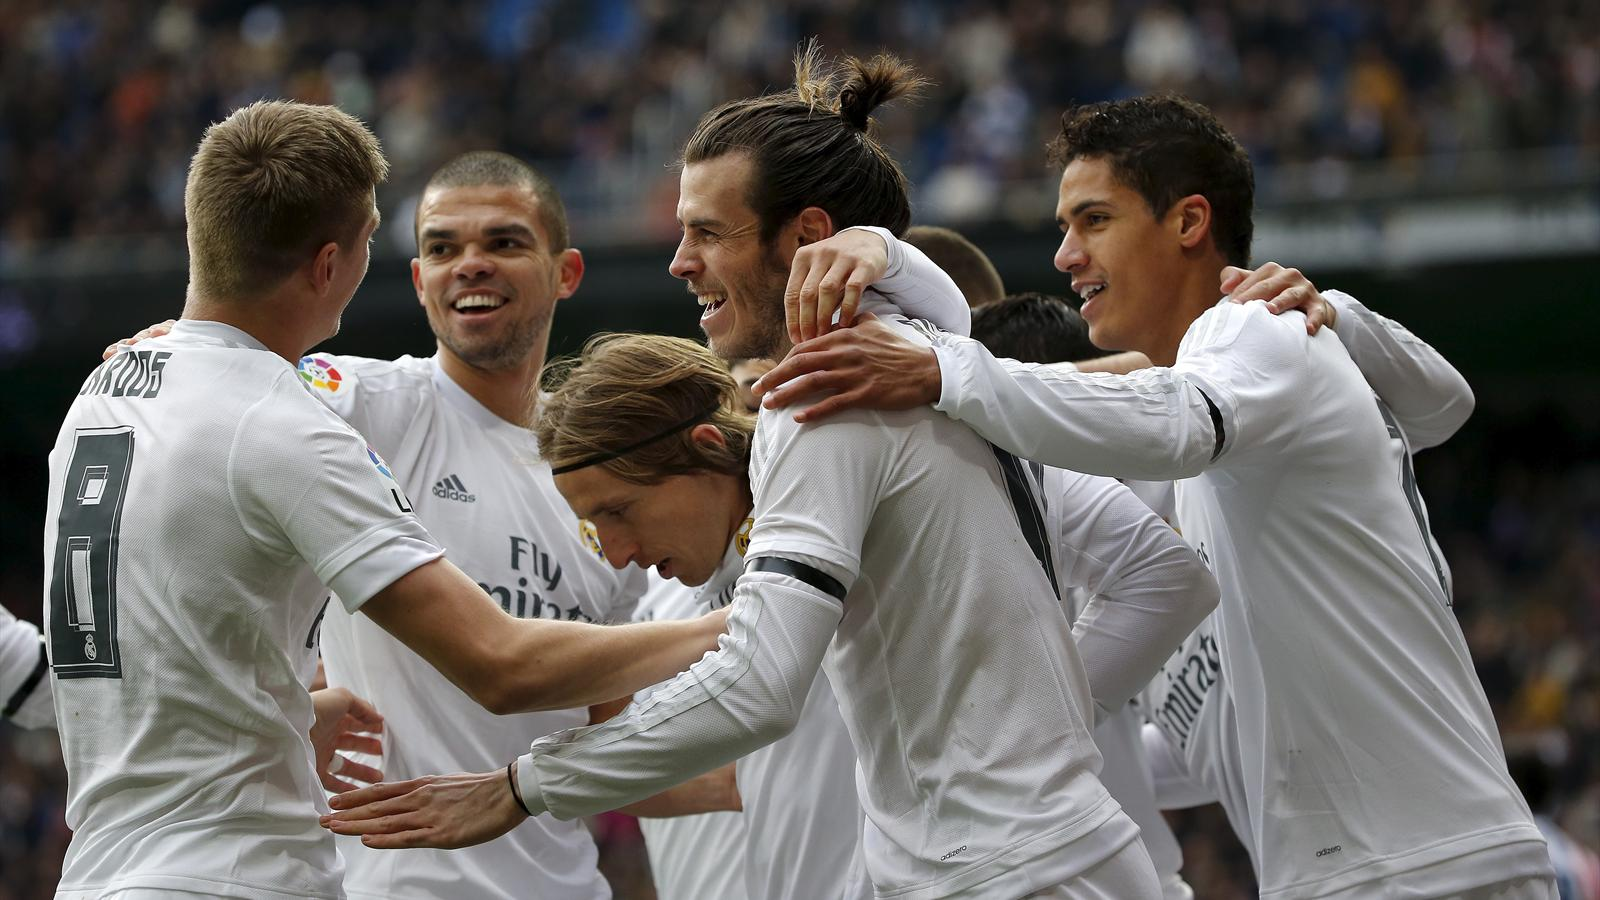 Real Madrid's Gareth Bale celebrates his first goal against Sporting Gijon with teammates